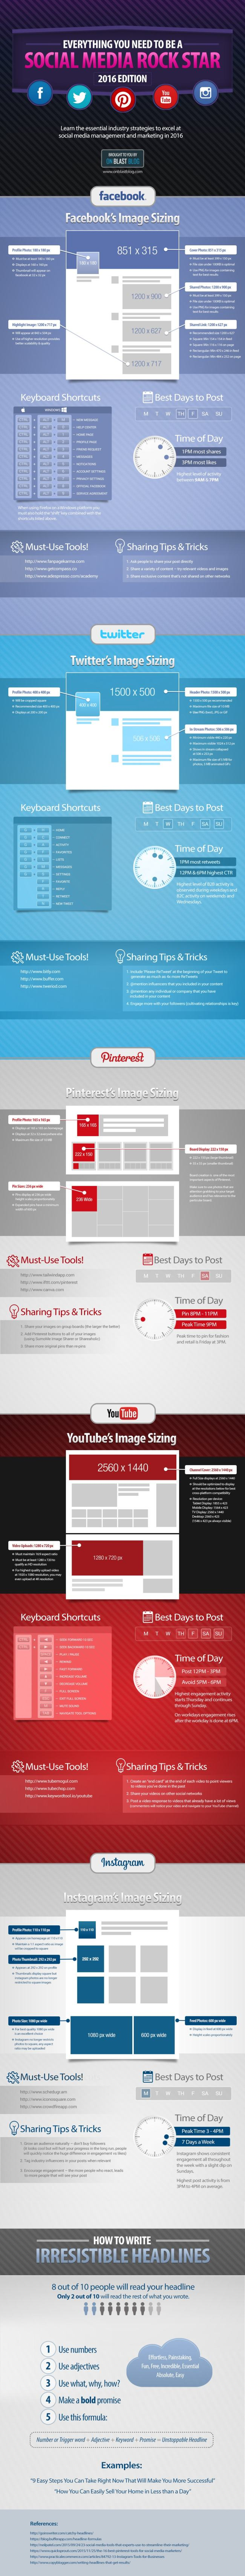 Want to Excel at Social Media Marketing Today? Read This. Social Media Strategy  Social-Media-Image-Sizing-Cheat-Sheet